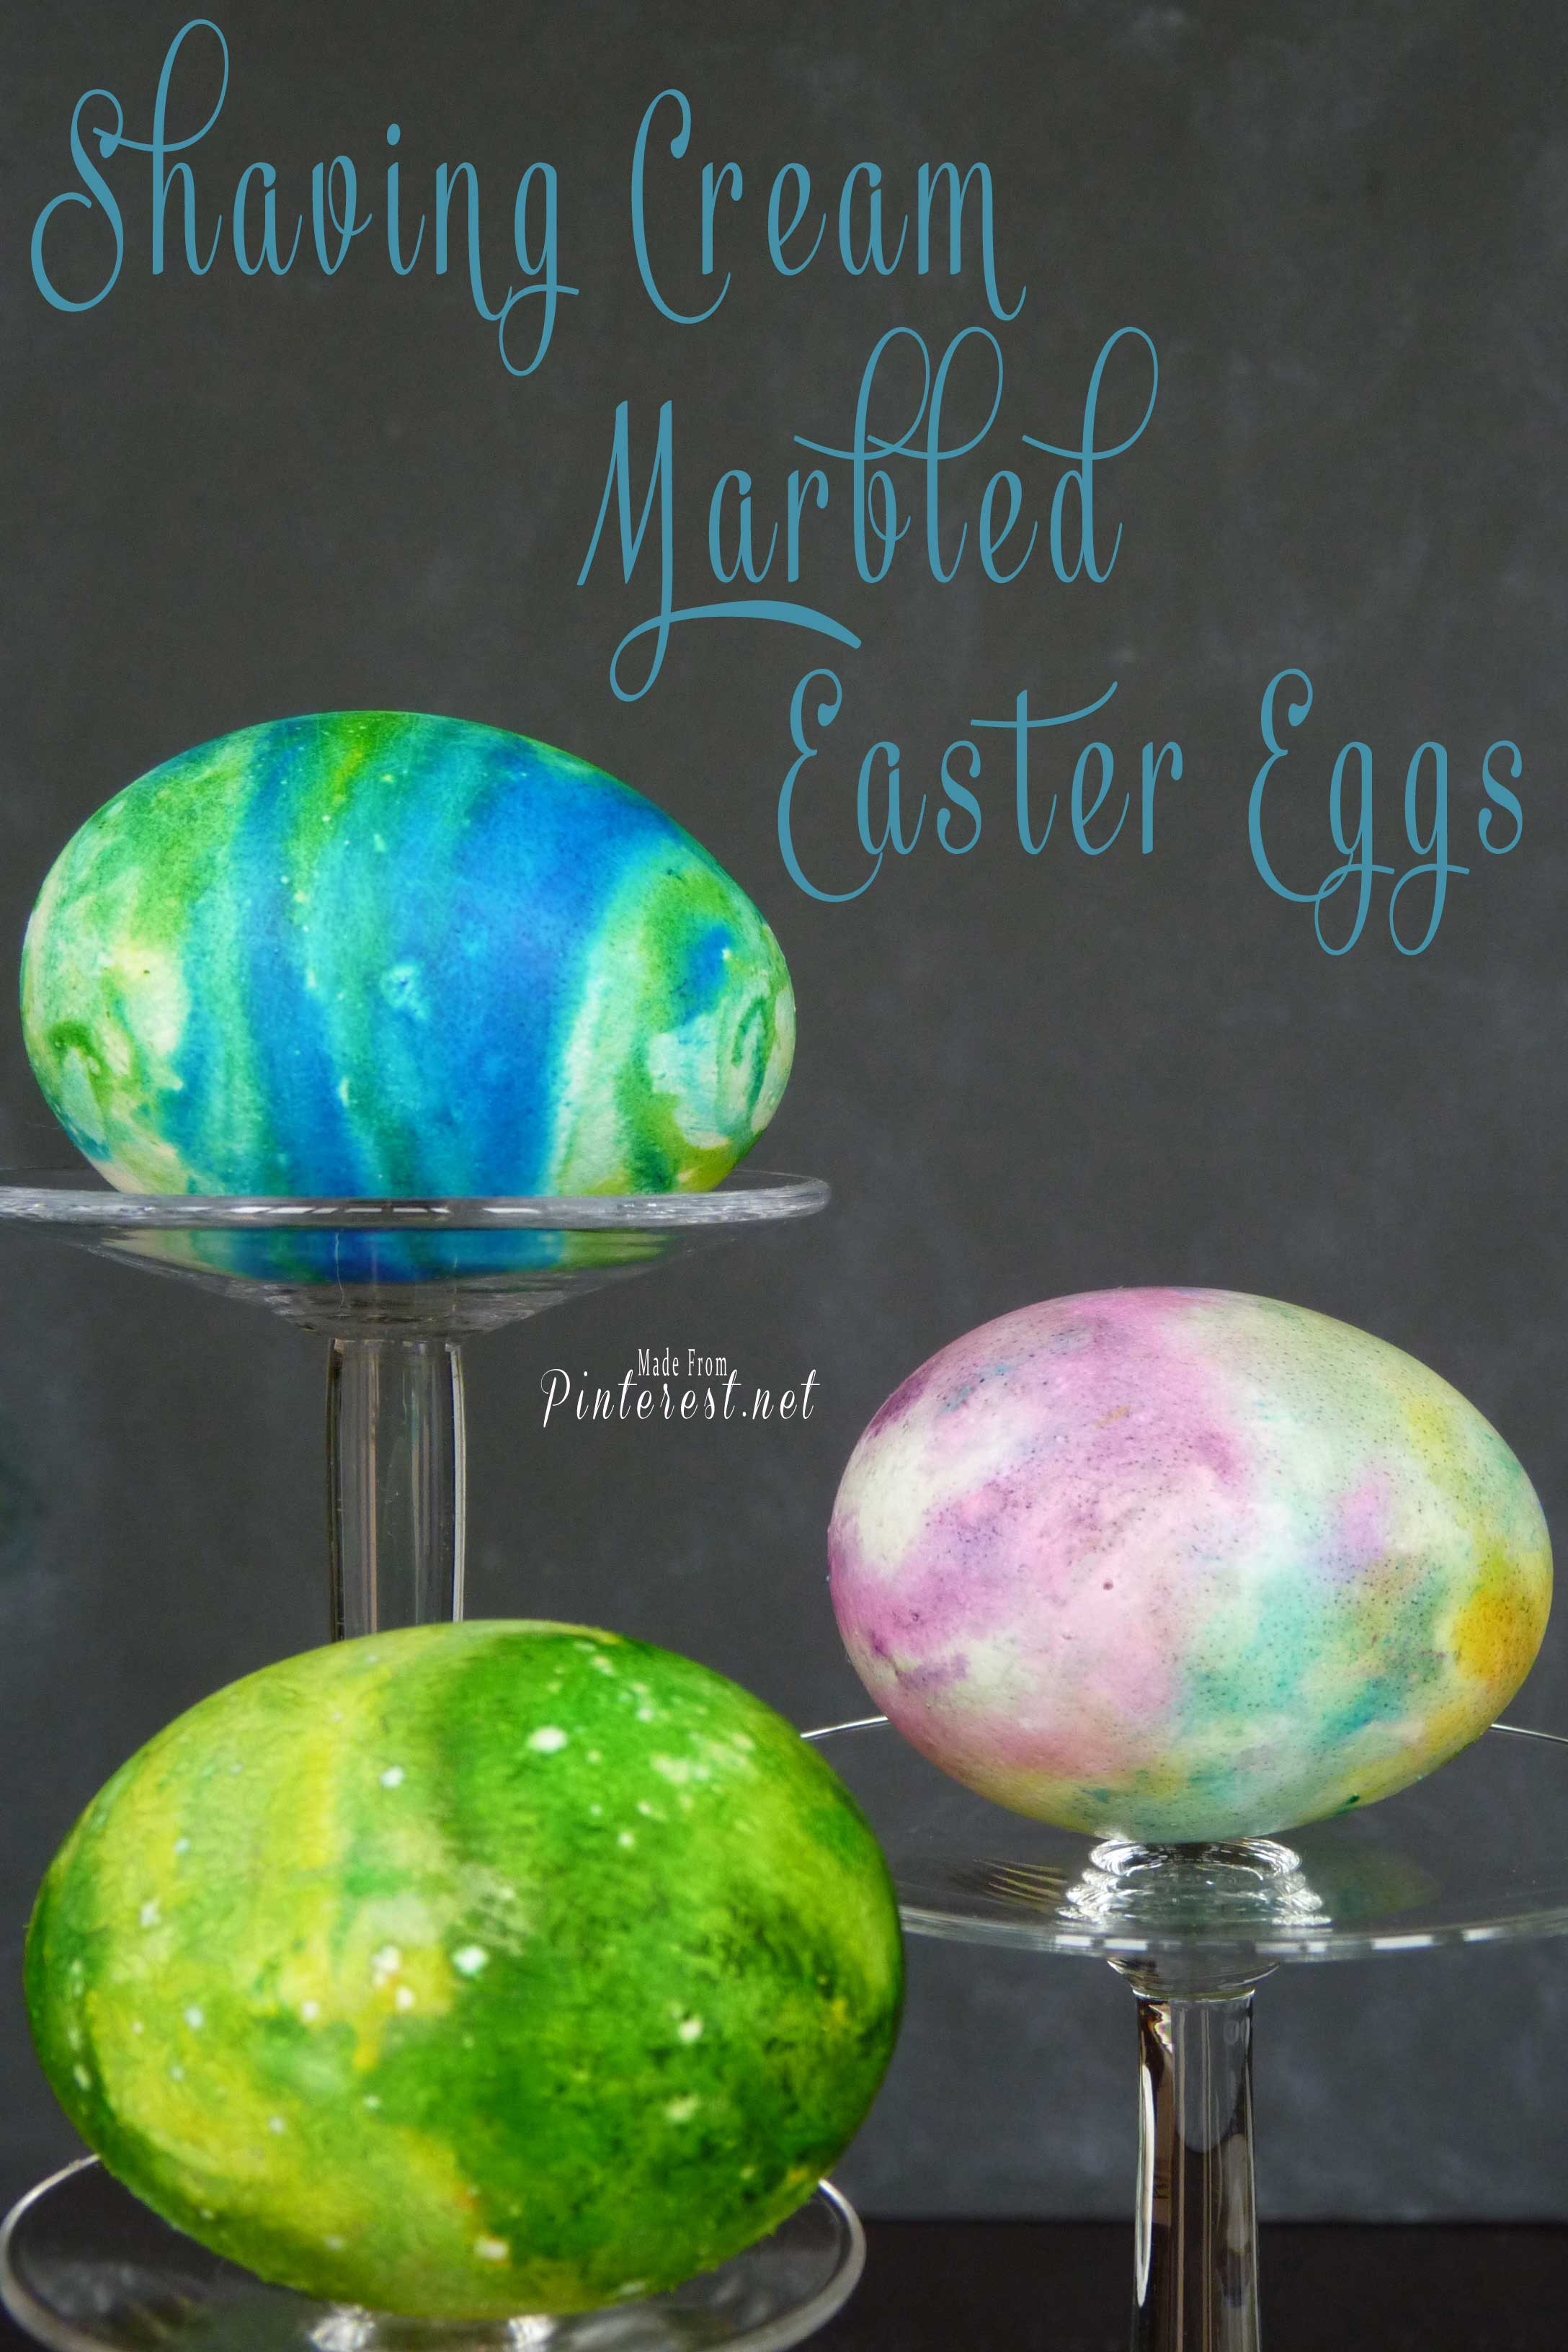 Shaving-Cream-Marbled-Easter-Eggs1